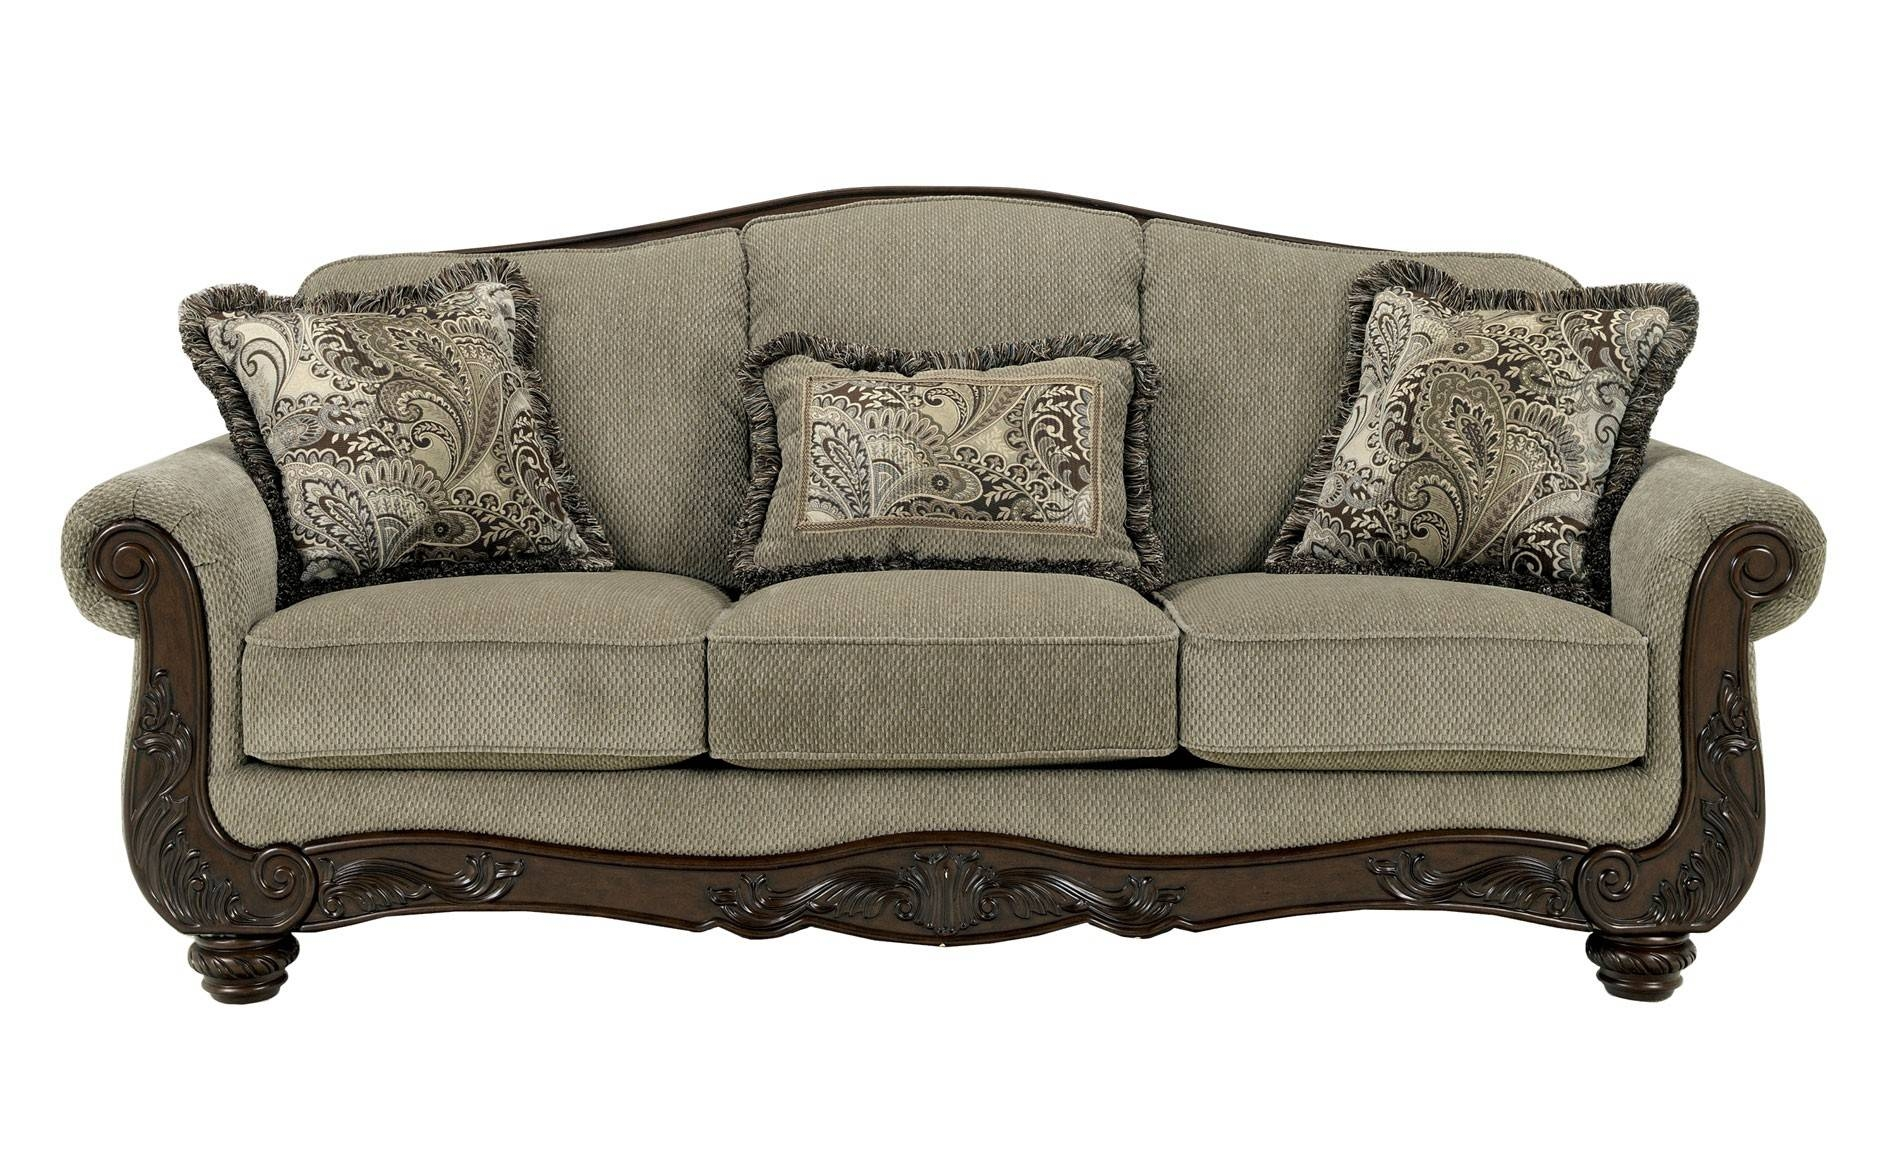 Unique Love Seat Sofas With Ashley Furniture Bradington Truffle within Bradington Truffle Sofas (Image 15 of 15)